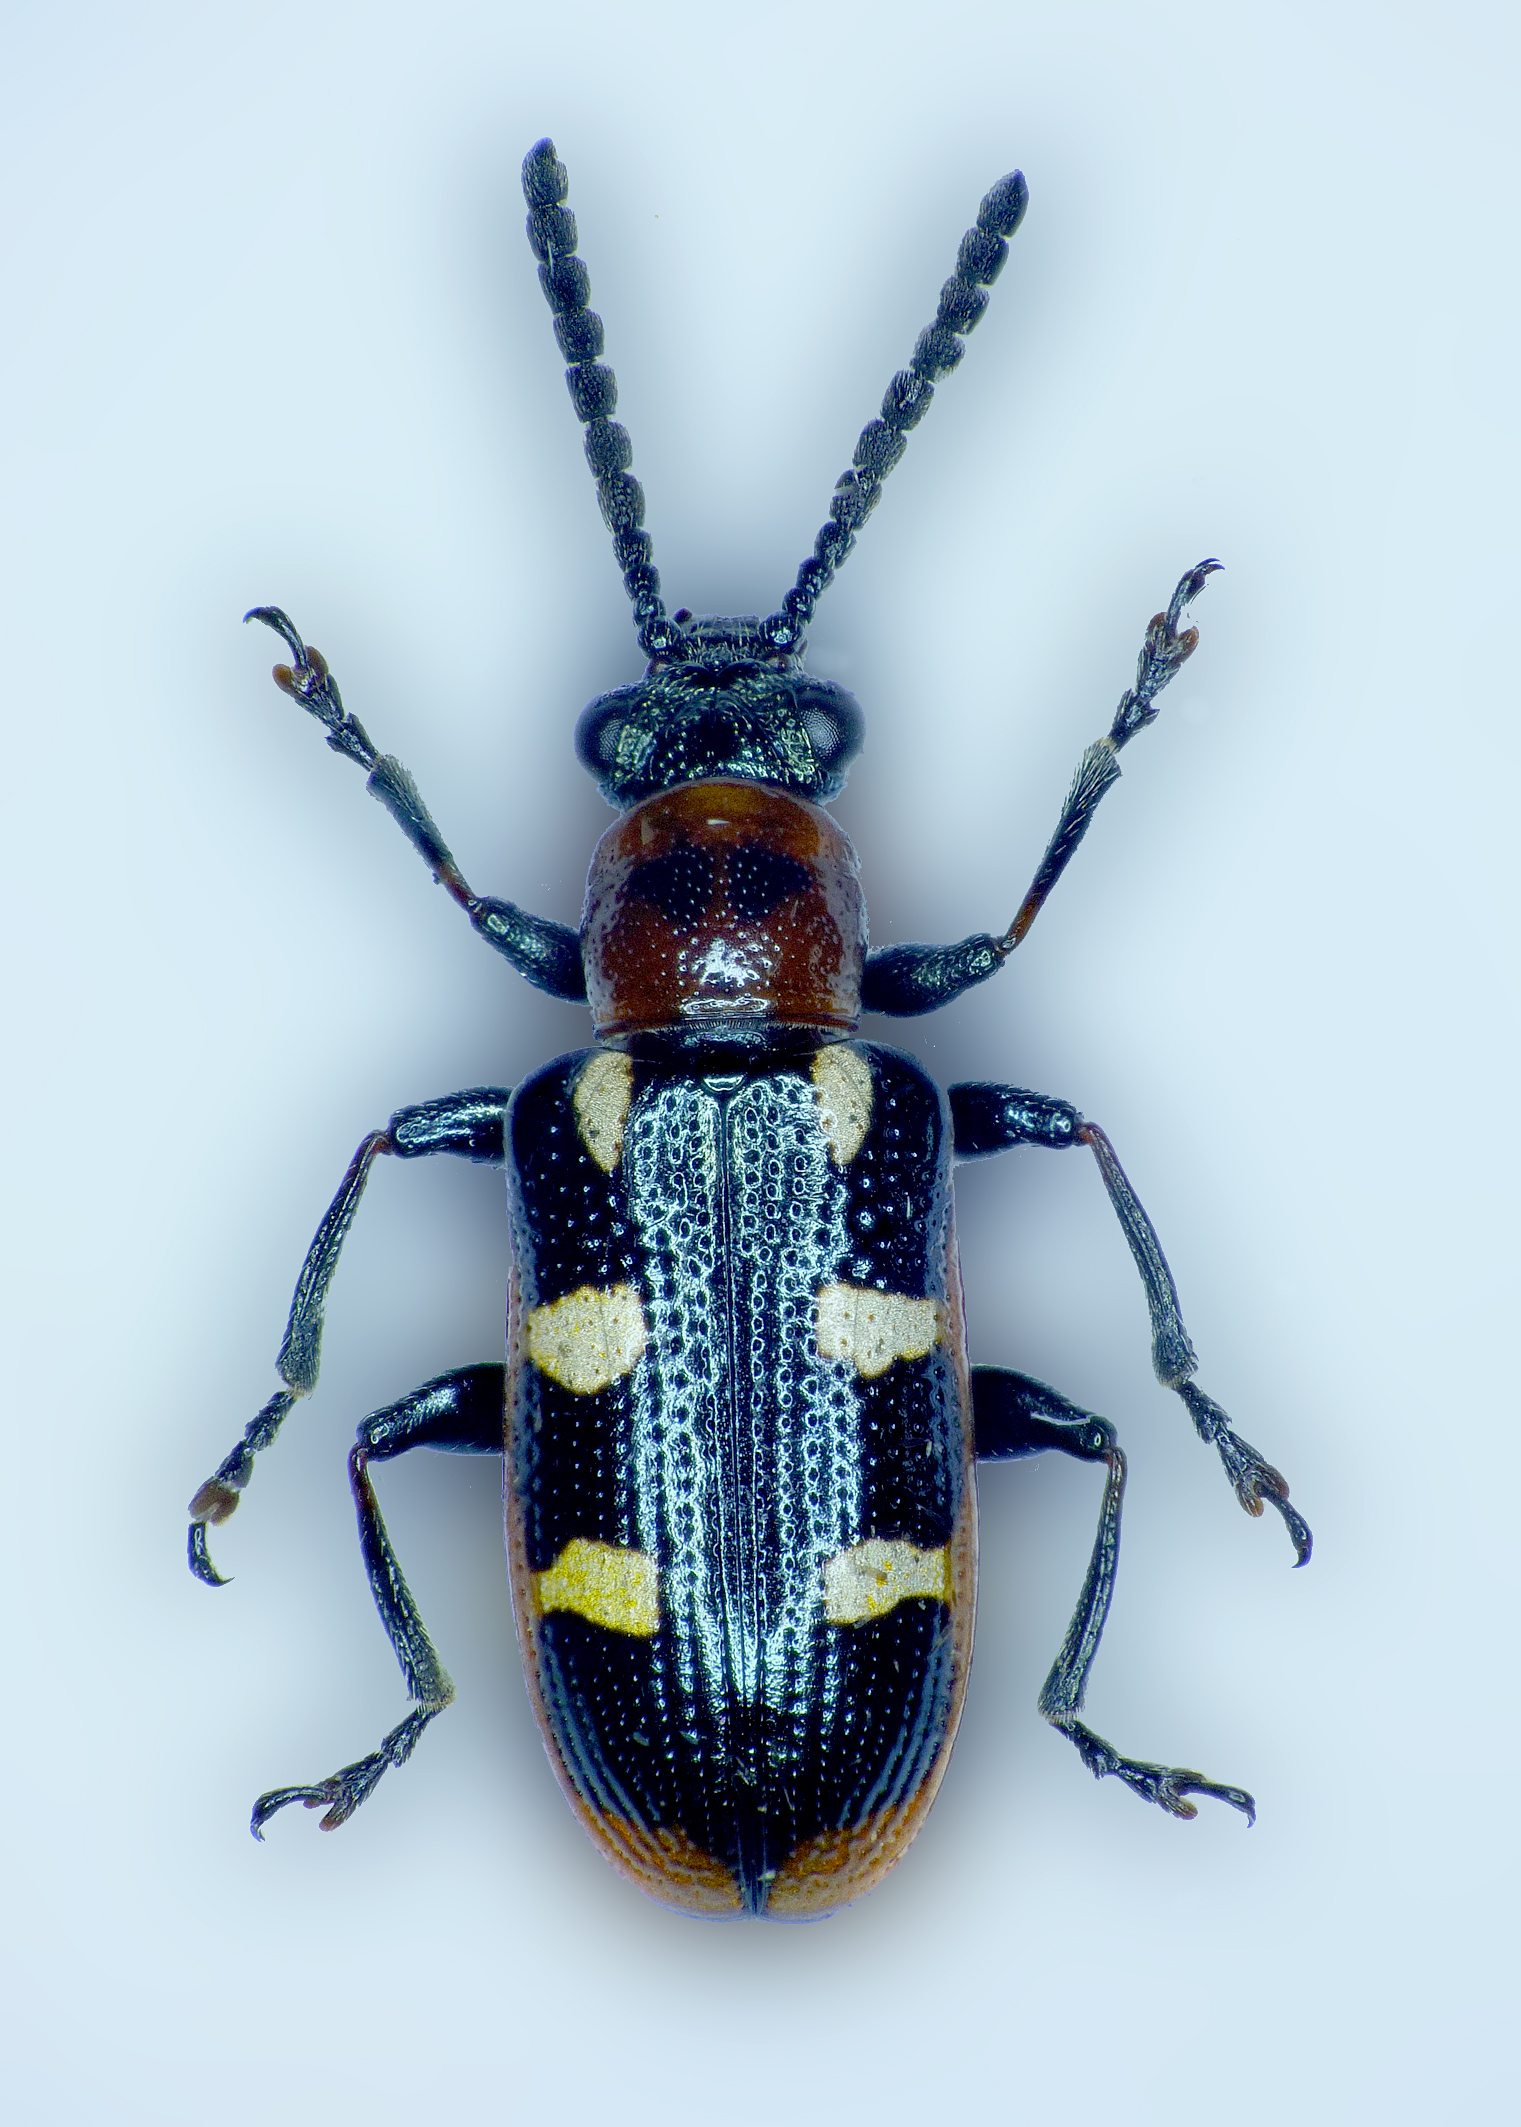 Asparagus Beetle specimen - garden - autumn 2015 - still trying out the photo-stacking software. It looks great for photos of specimens, but rather tricky for live critters!